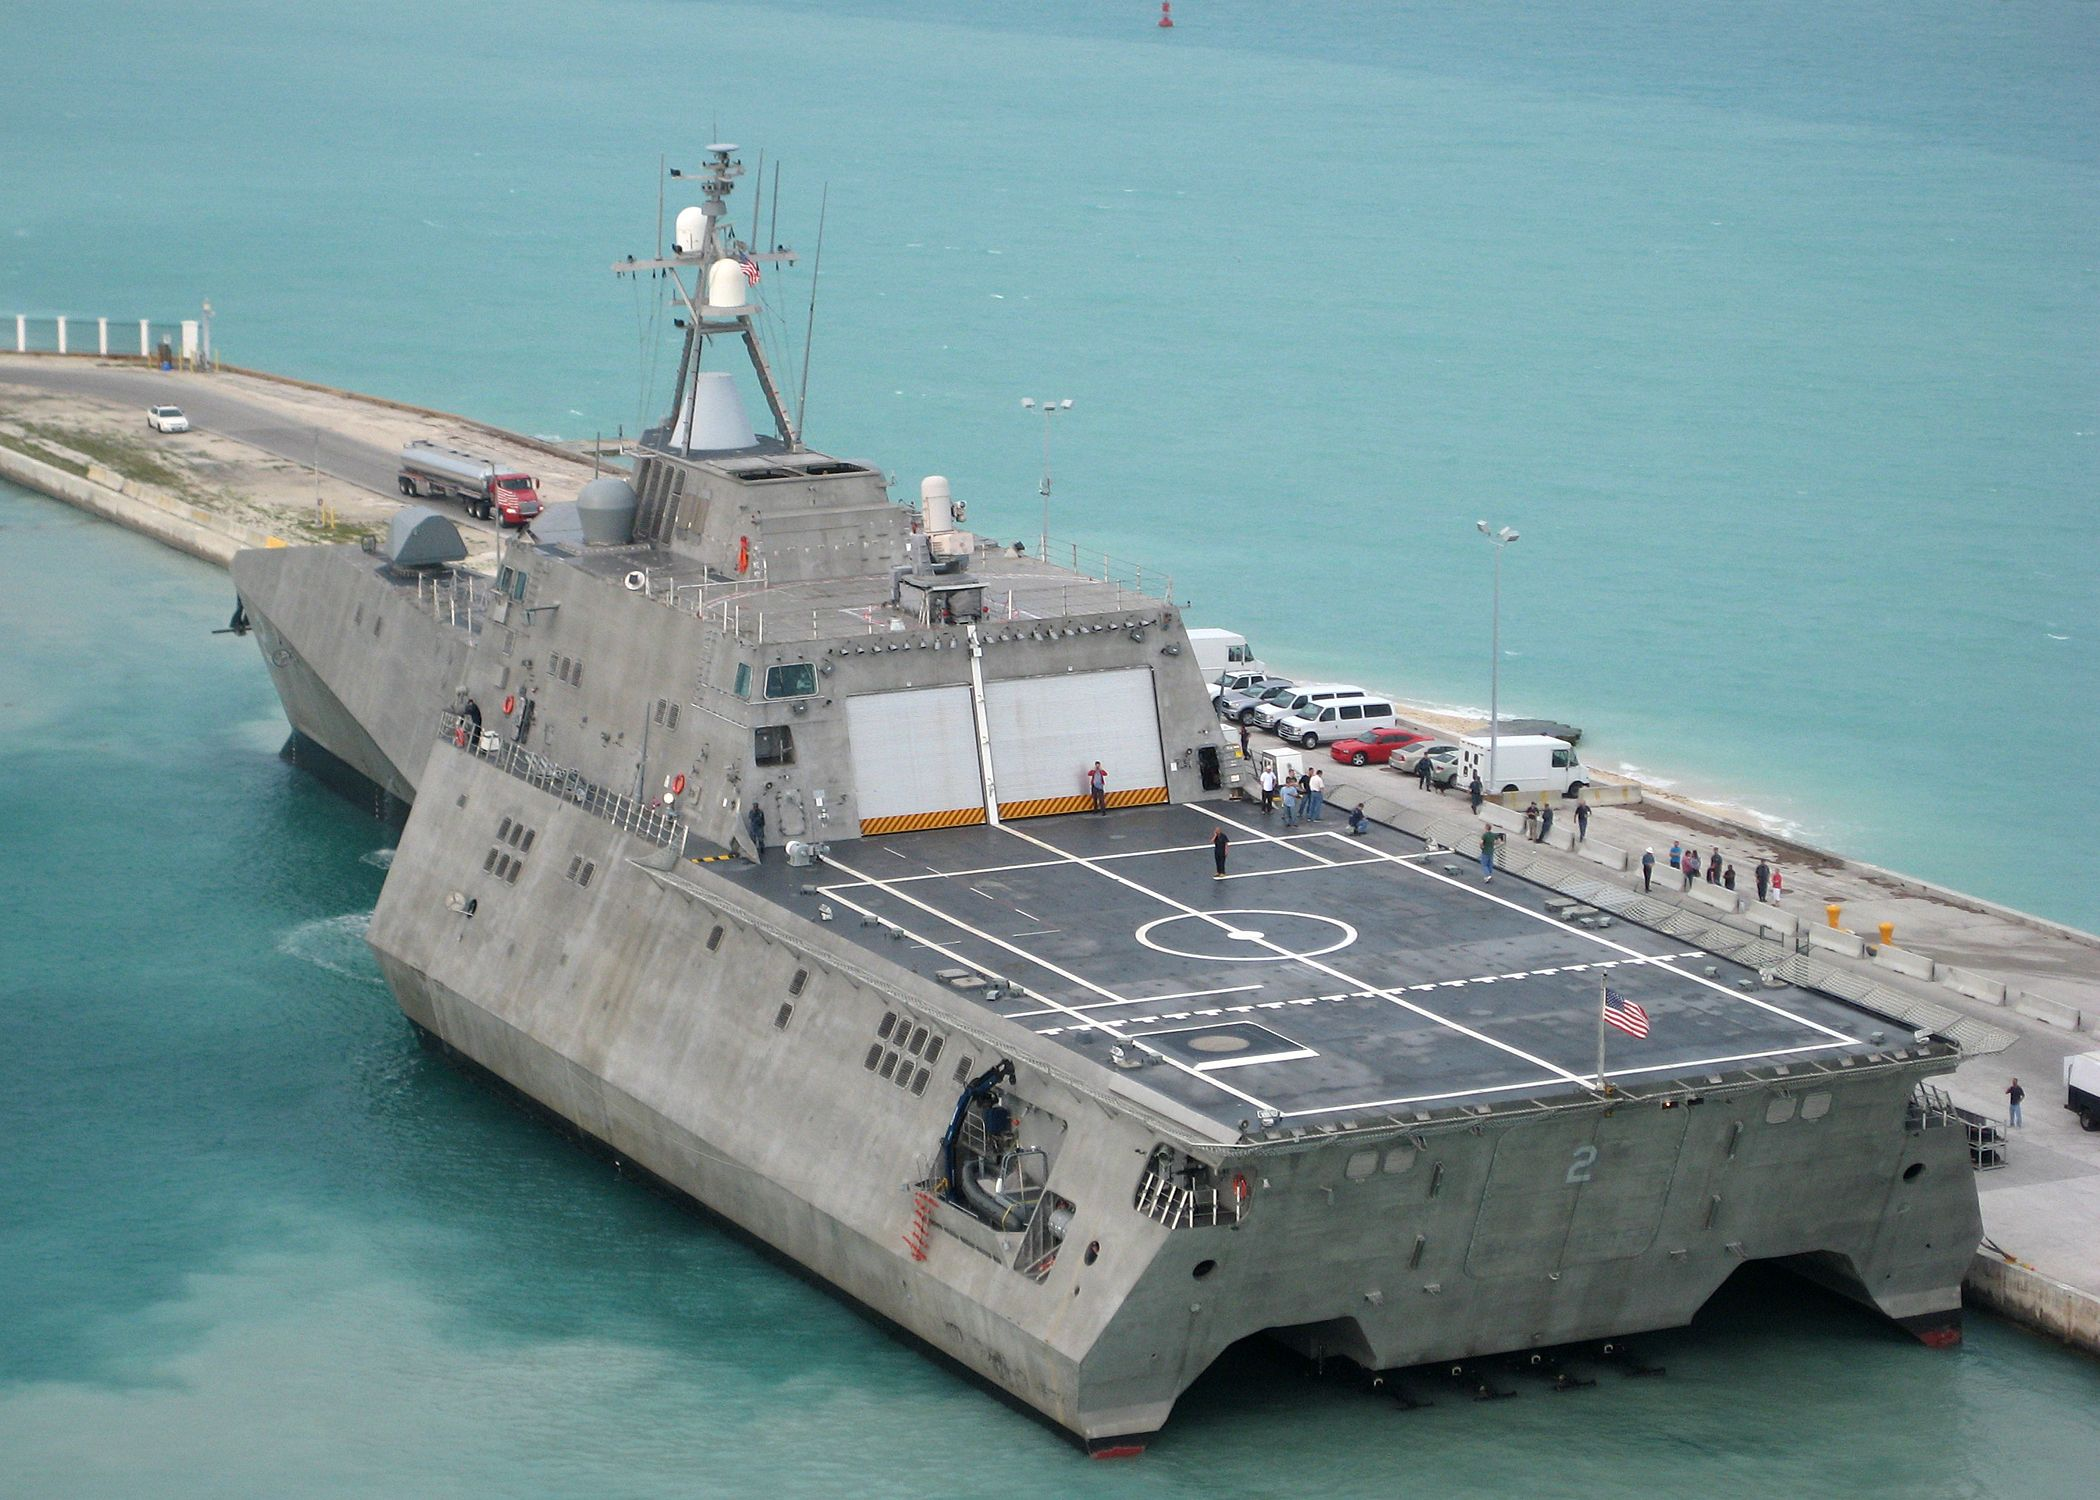 Independenceclass littoral combat ship Wikipedia, the